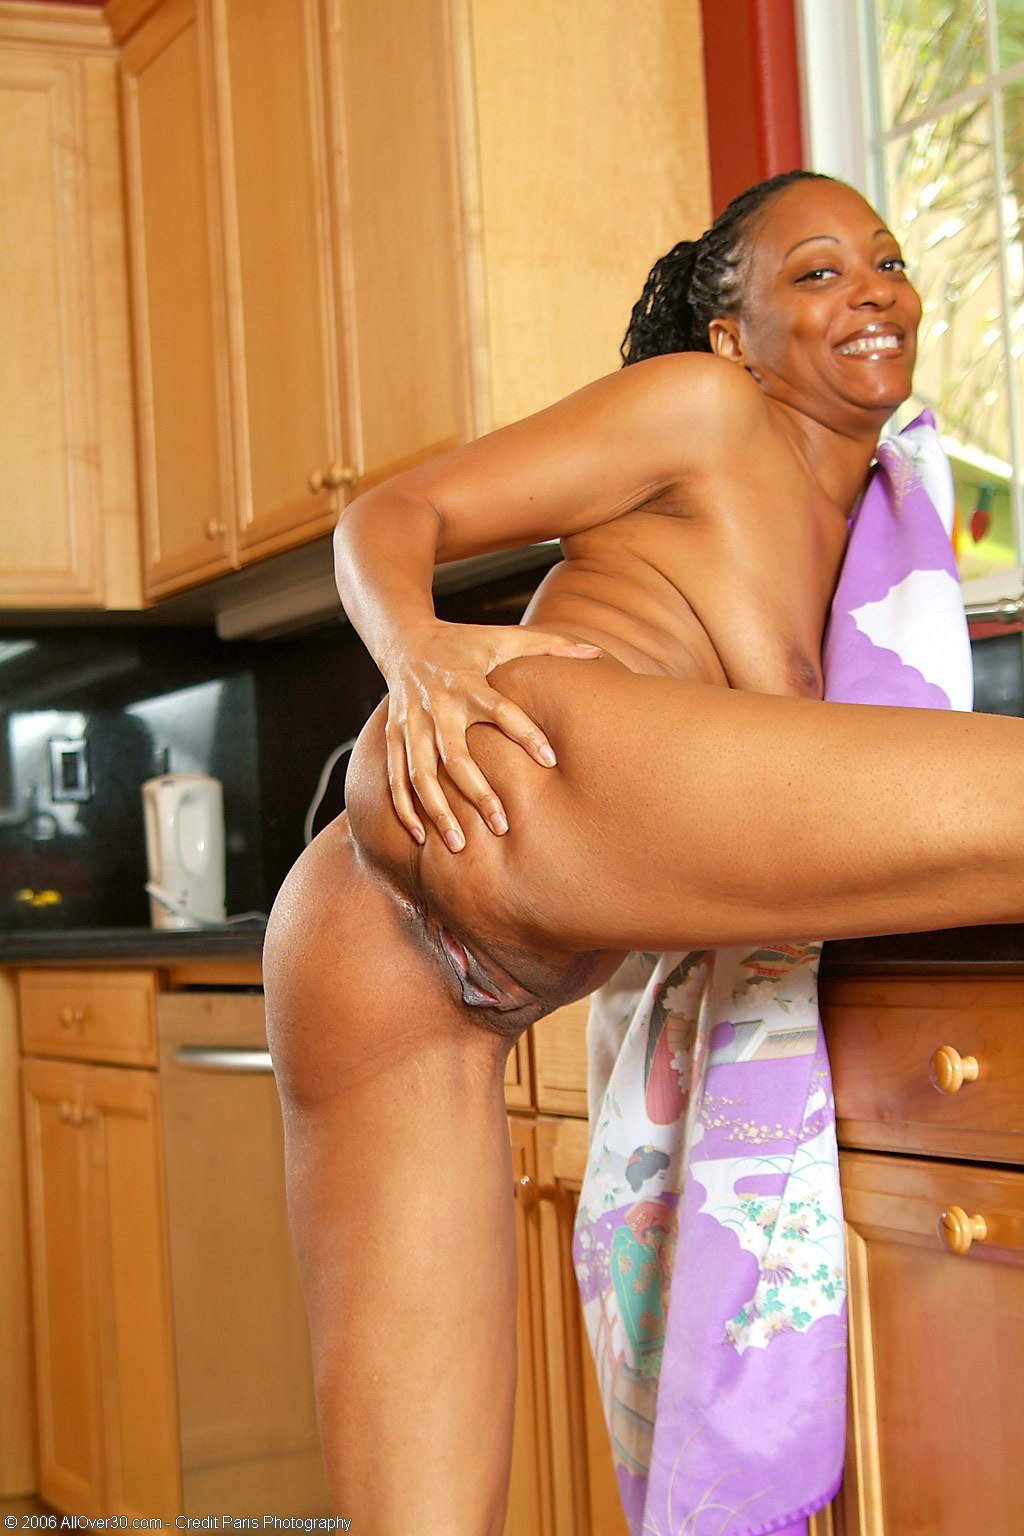 Opinion you black girl naked in kitchen think, that